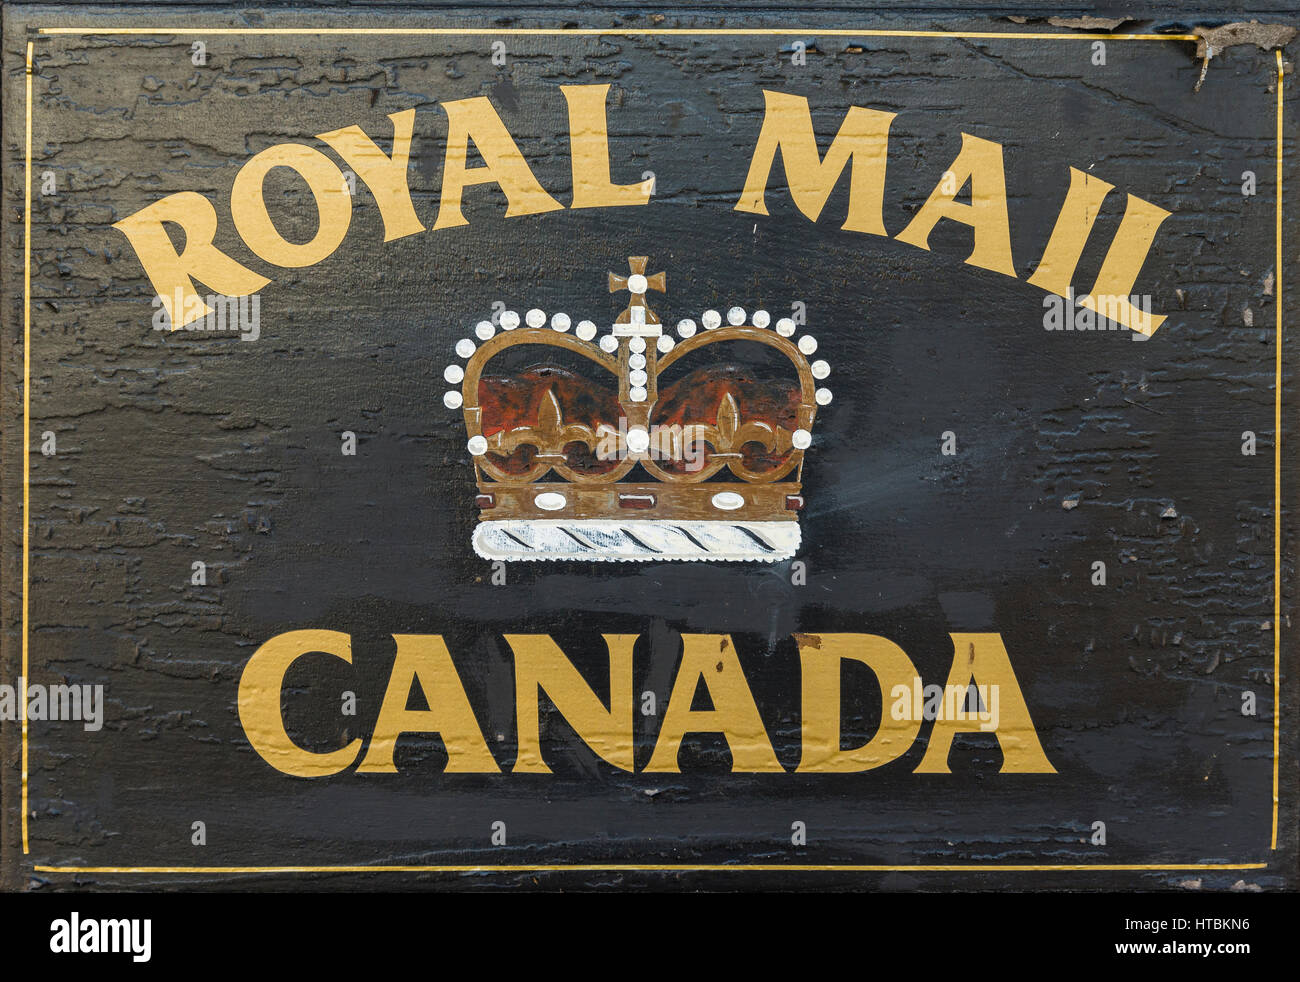 A black Royal Mail Canada sign with gold lettering with a crown in the center. - Stock Image